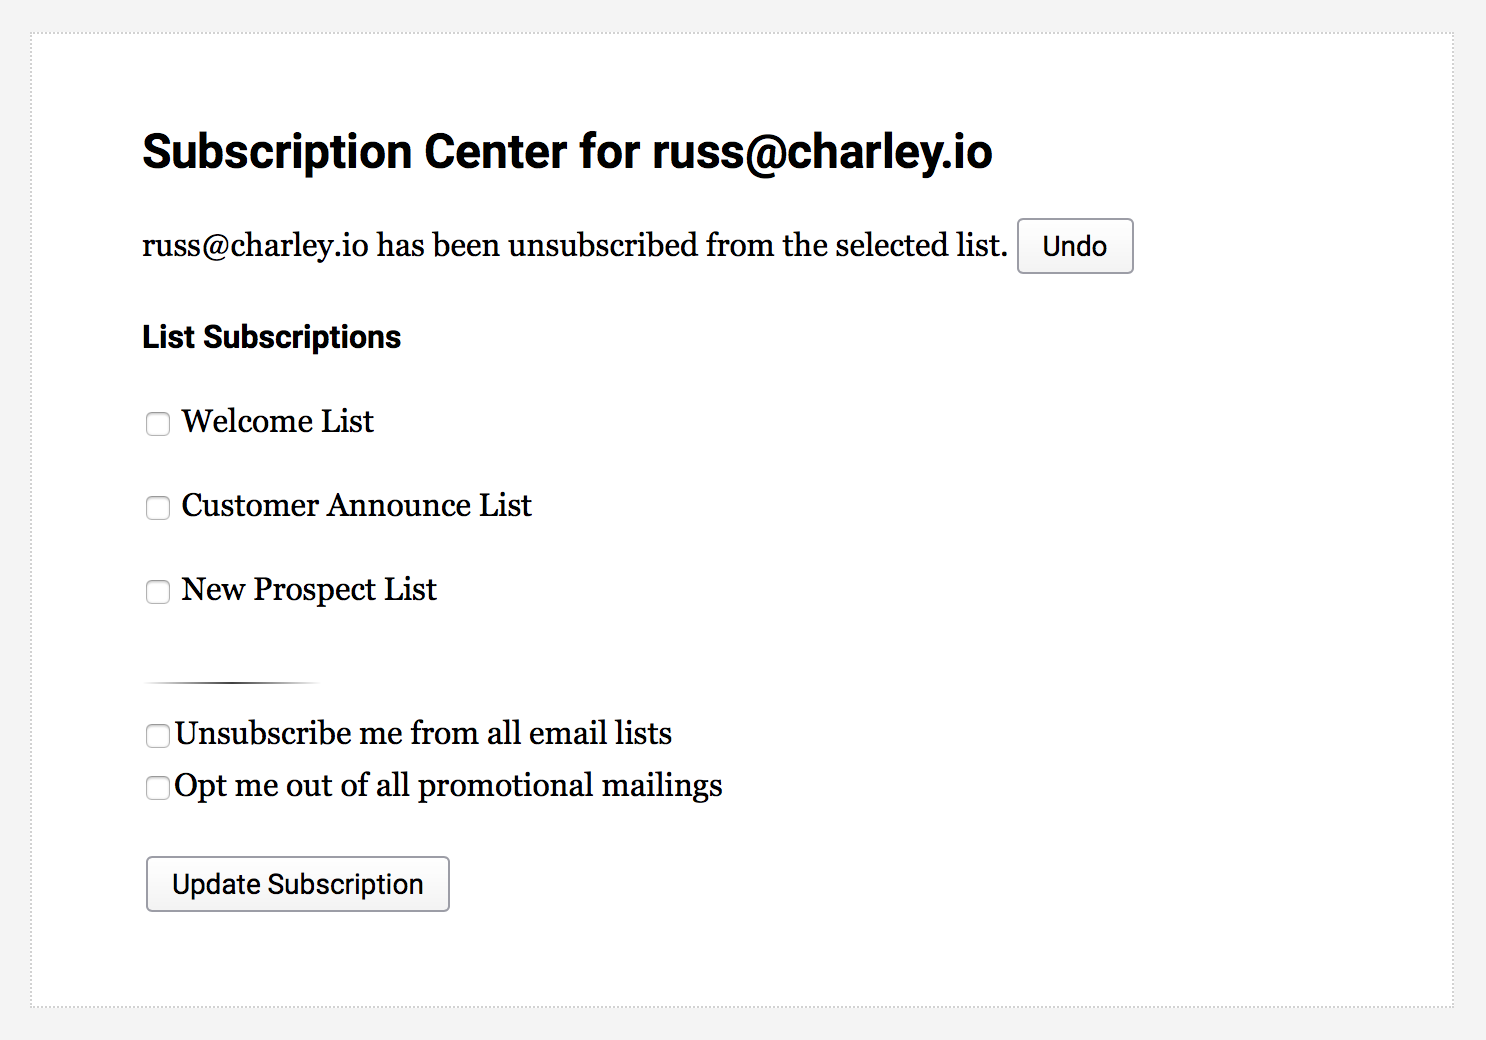 Charley Subscription Portal